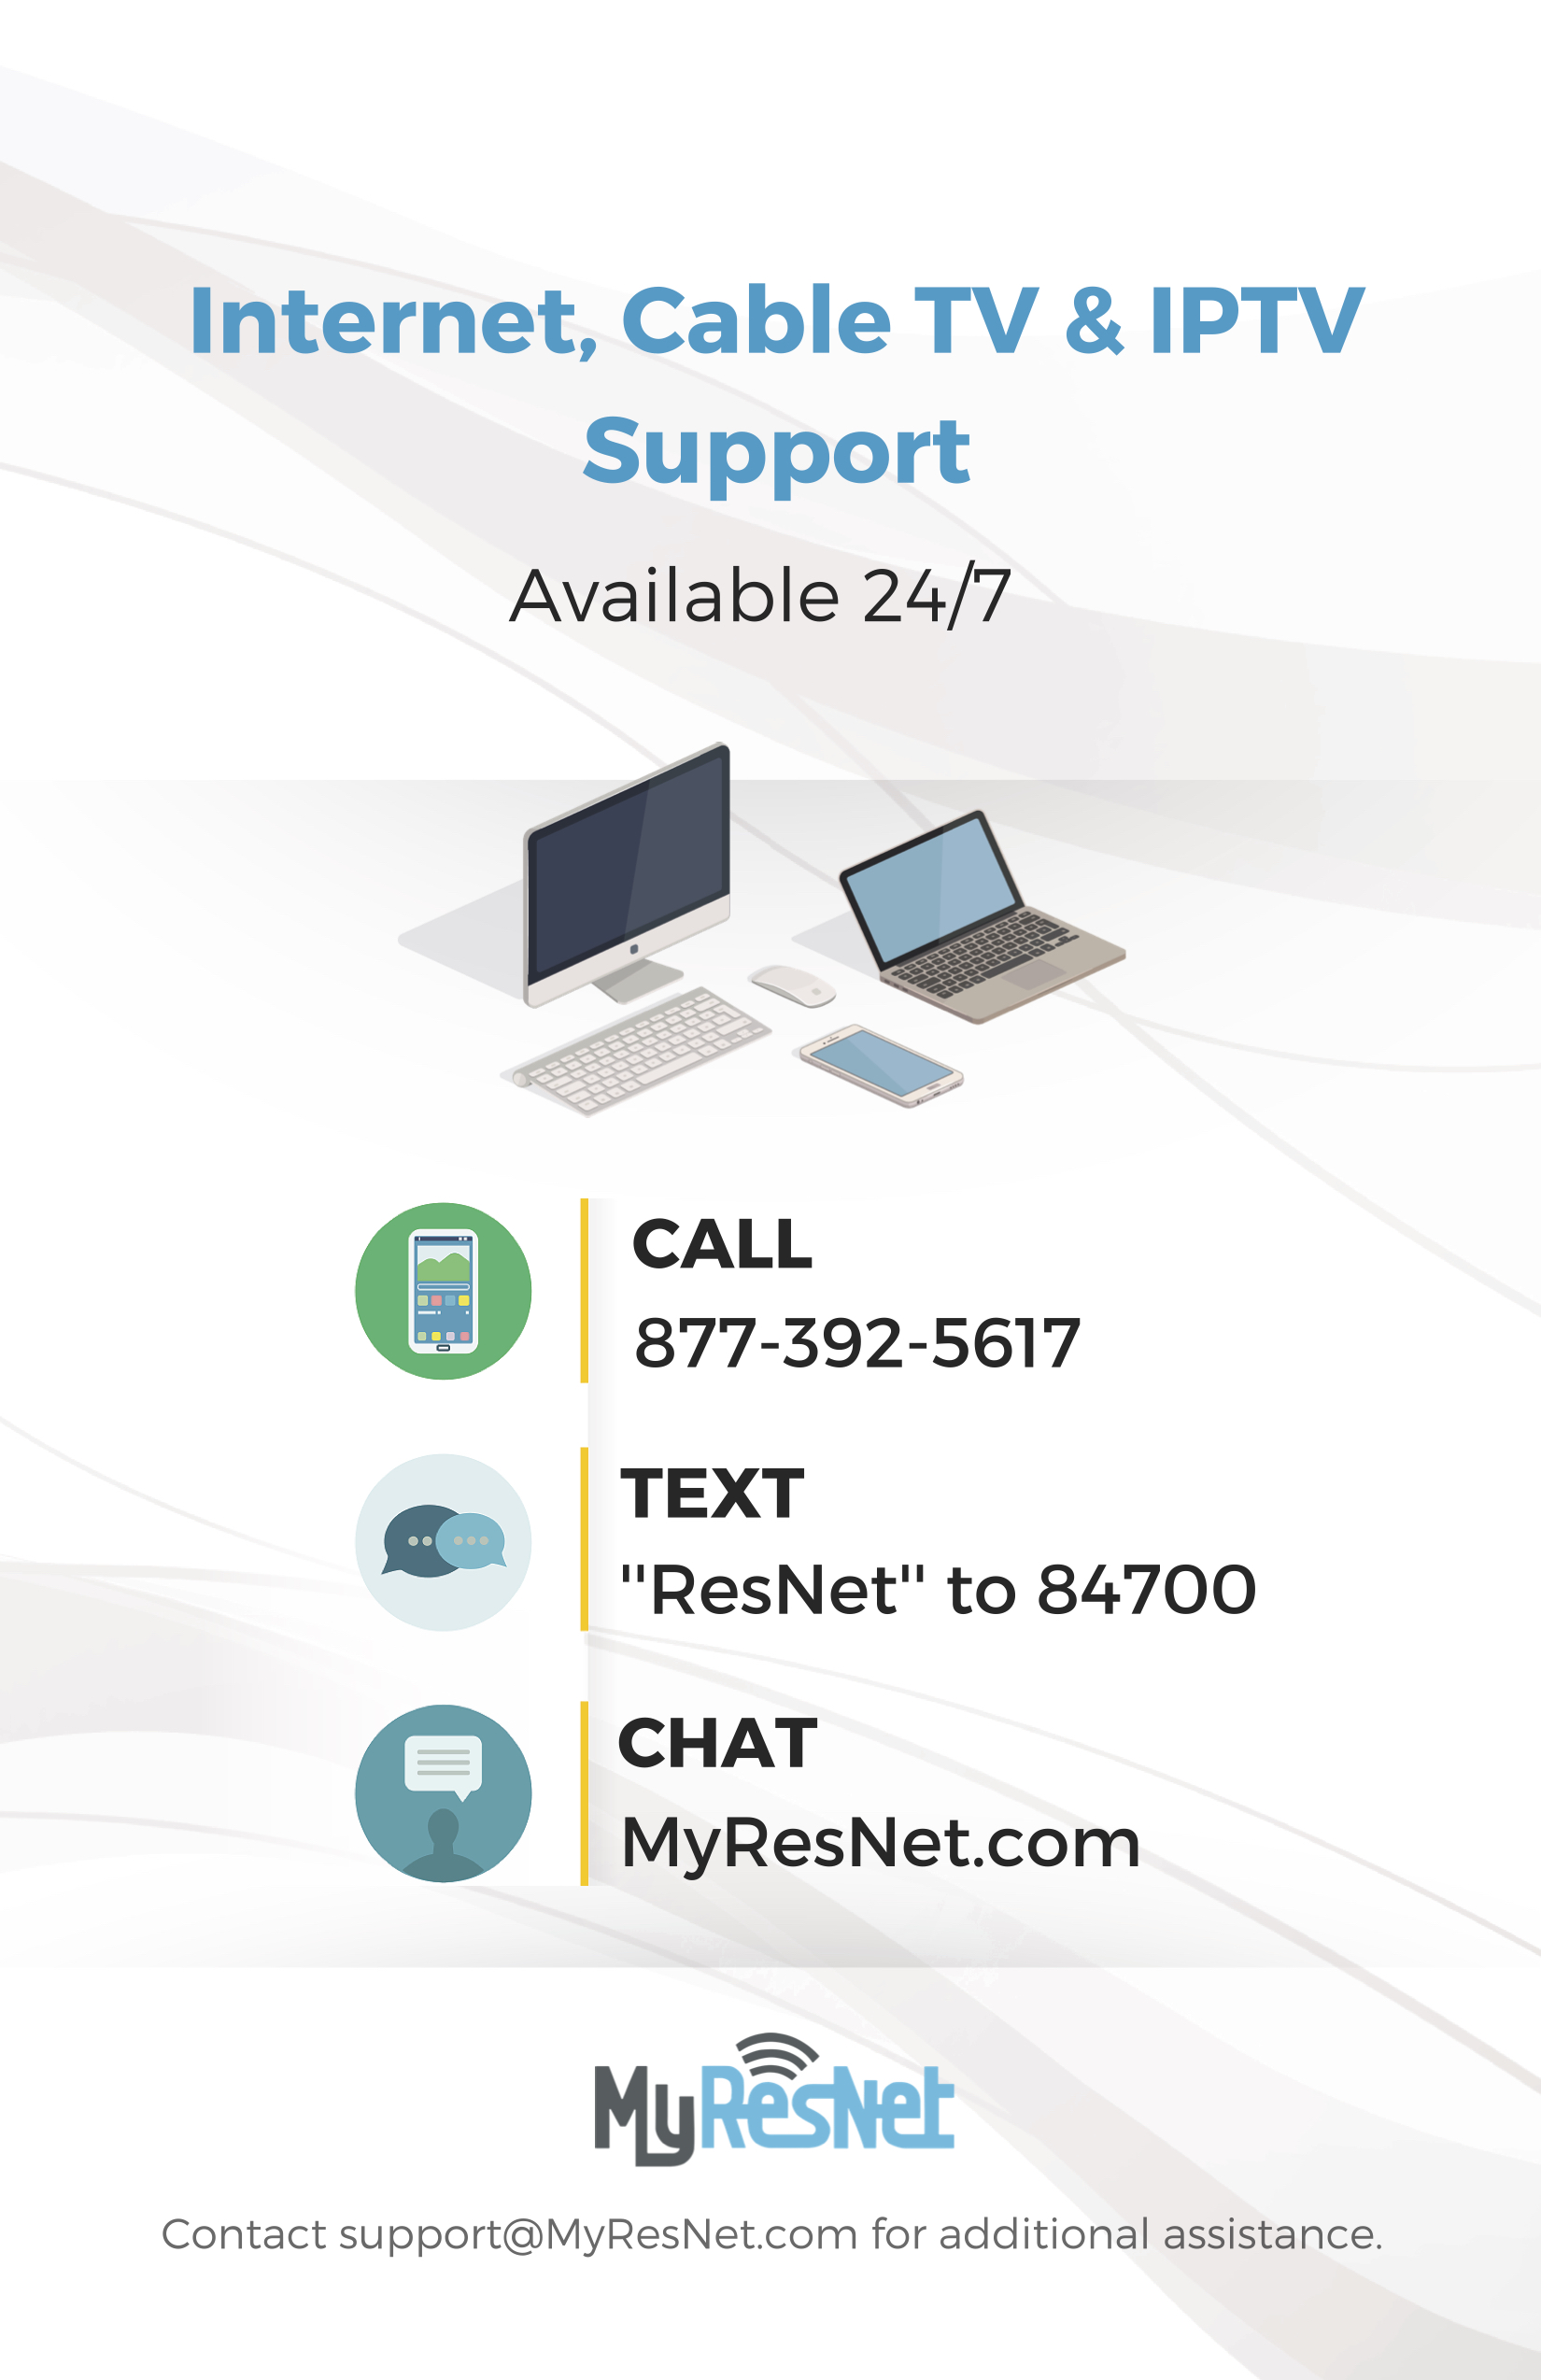 image of Apogee help desk information poster